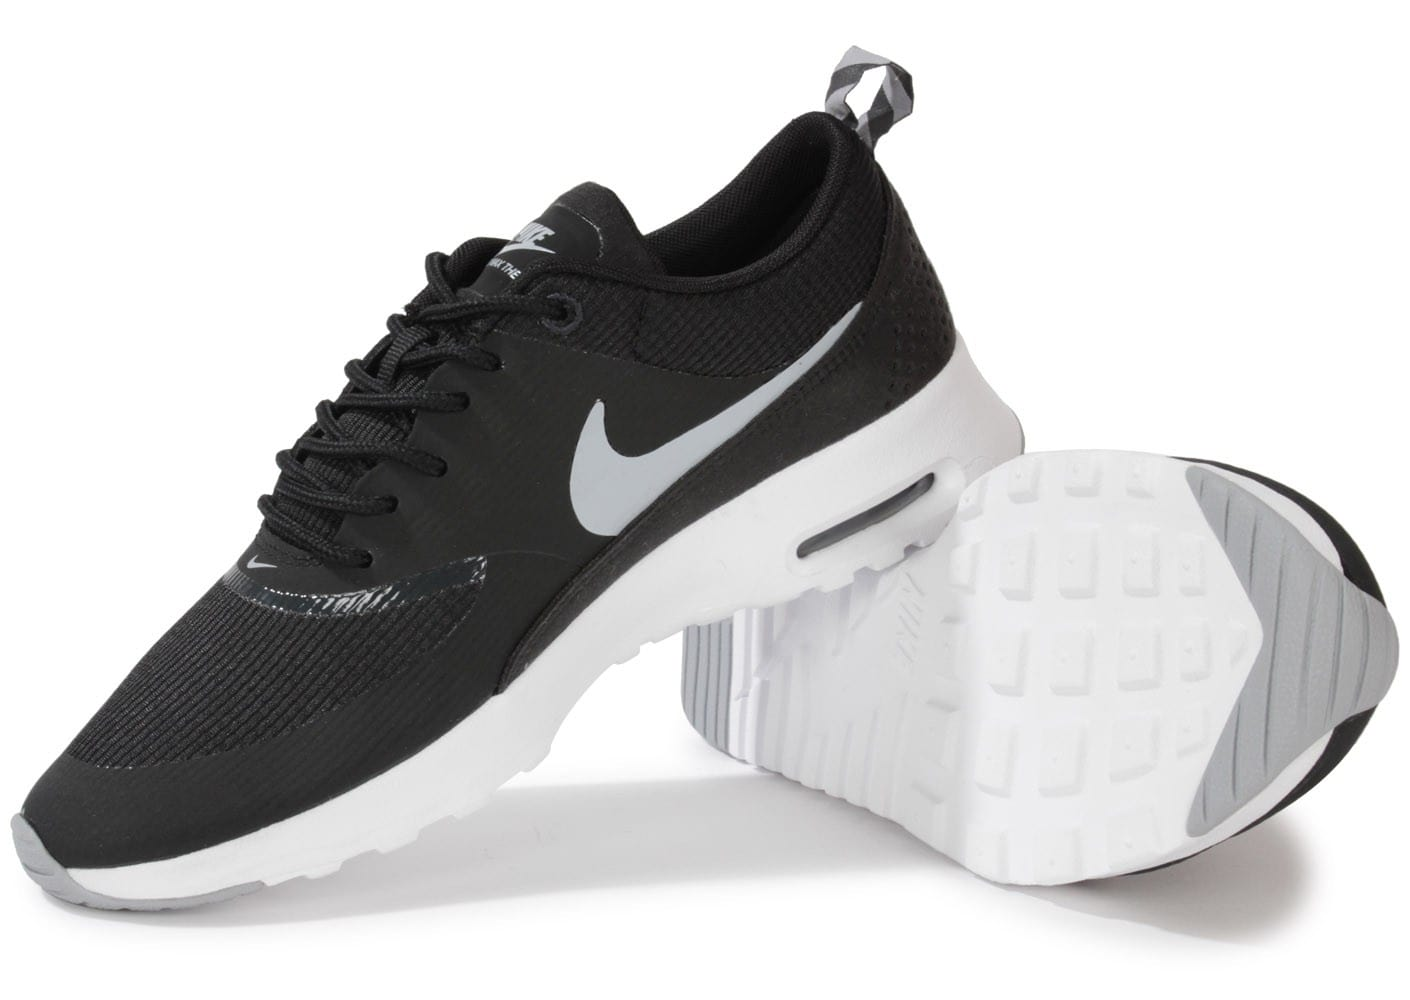 nike air max thea noire blanche chaussures chaussures. Black Bedroom Furniture Sets. Home Design Ideas